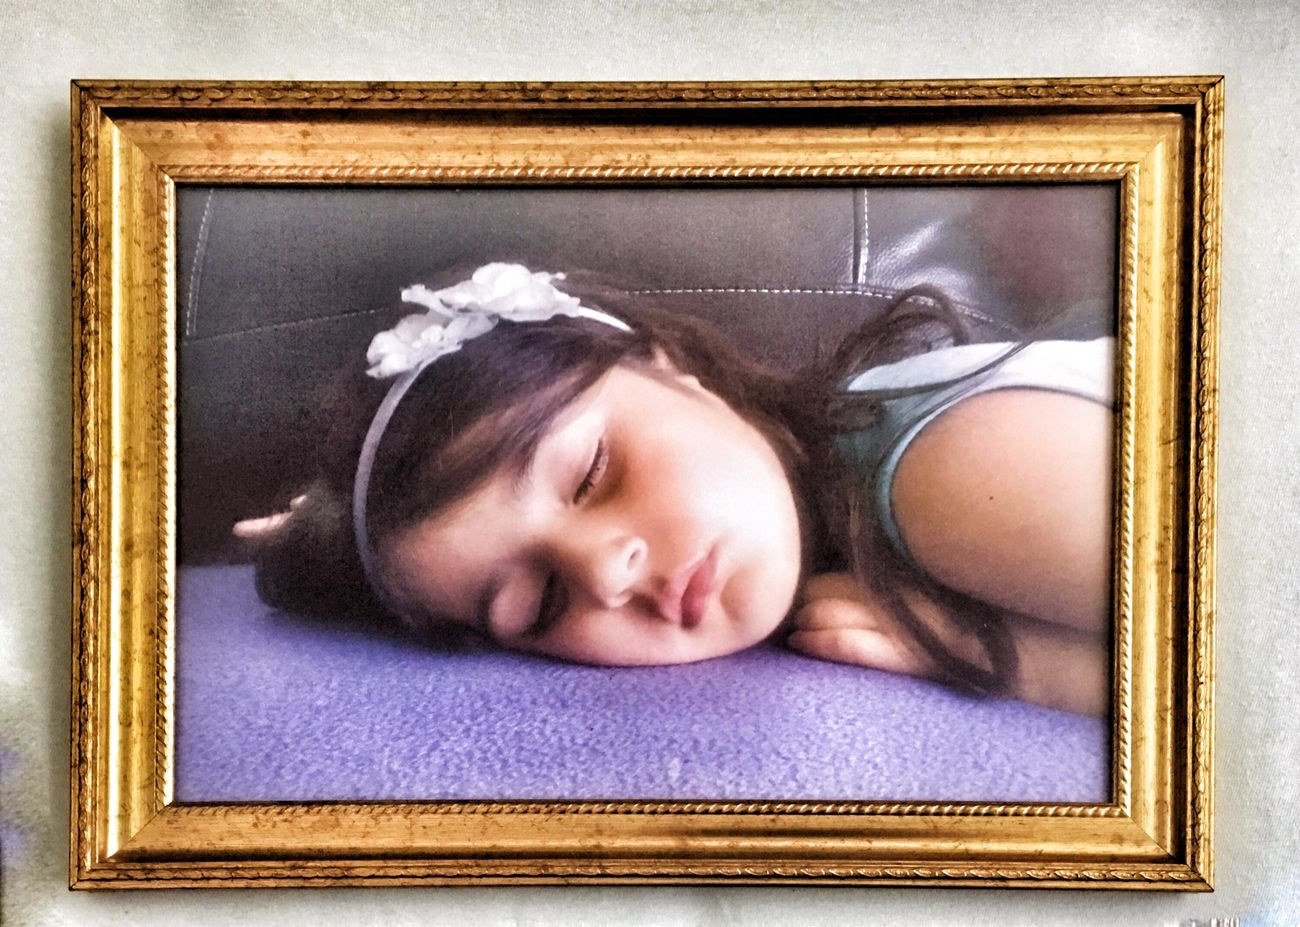 Night Night, Sleep Tight My Daughter EyeEm Best Shots The Netherlands The 2016 EyeEm Awards IPhoneography MyVistaNL EyeEmBestPics Eye4photography  Sleeping Beauty Eeyem Photography ❤ 💤💤💤 my love was here 2 years old, she is 11 now... Time Goes By Frame It! 🎉100 Showcase June